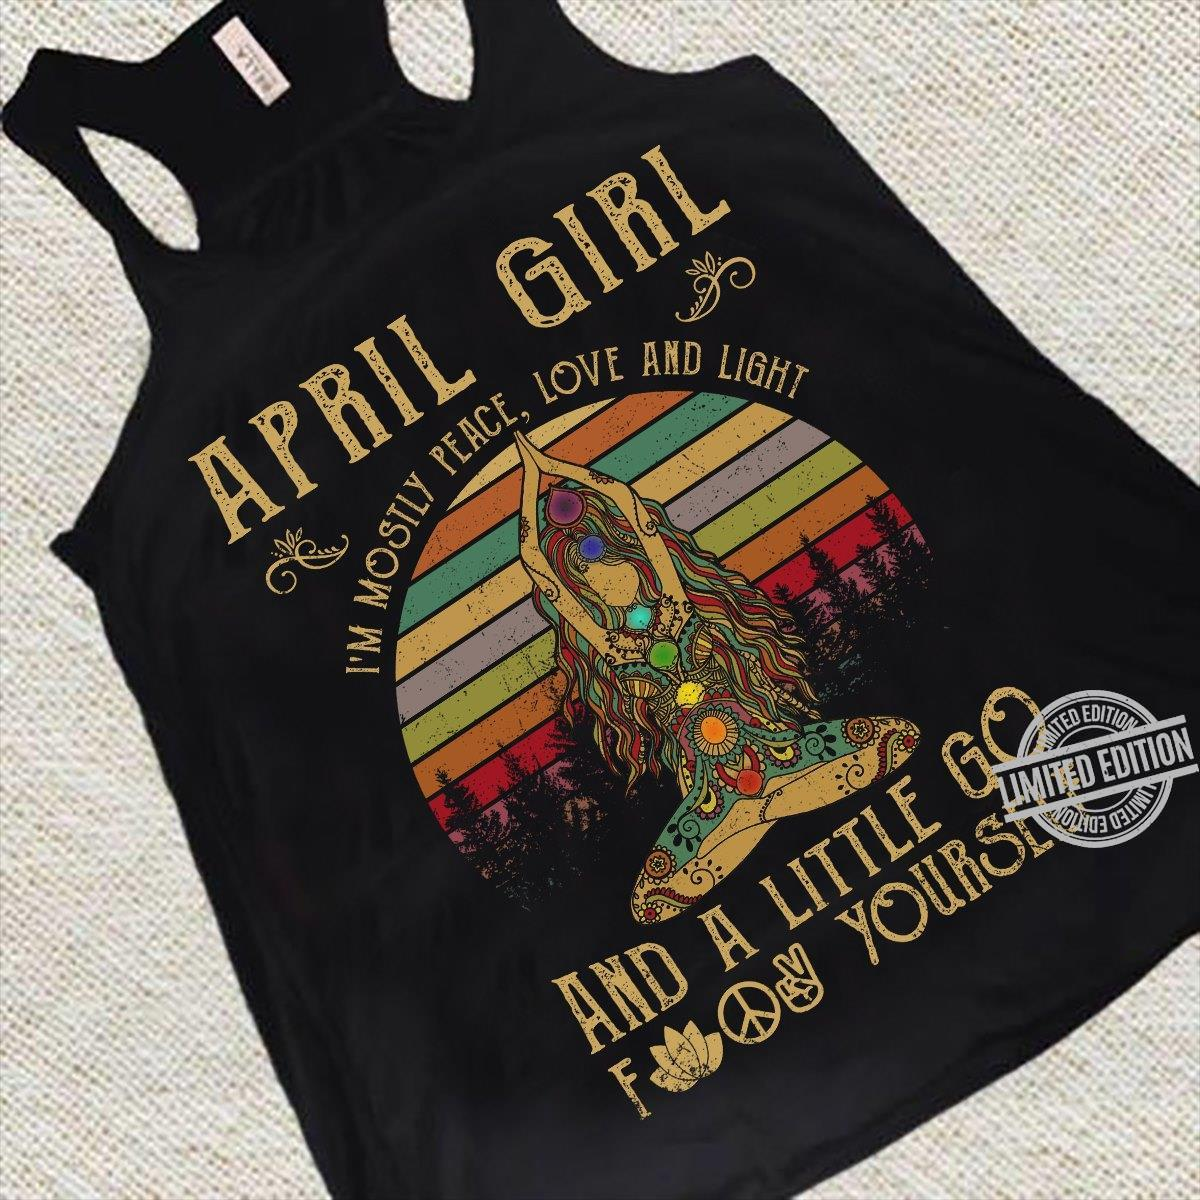 April Girl I'm Mosily Peace Love And Light And A Little Go Fuck Yourself Shirt